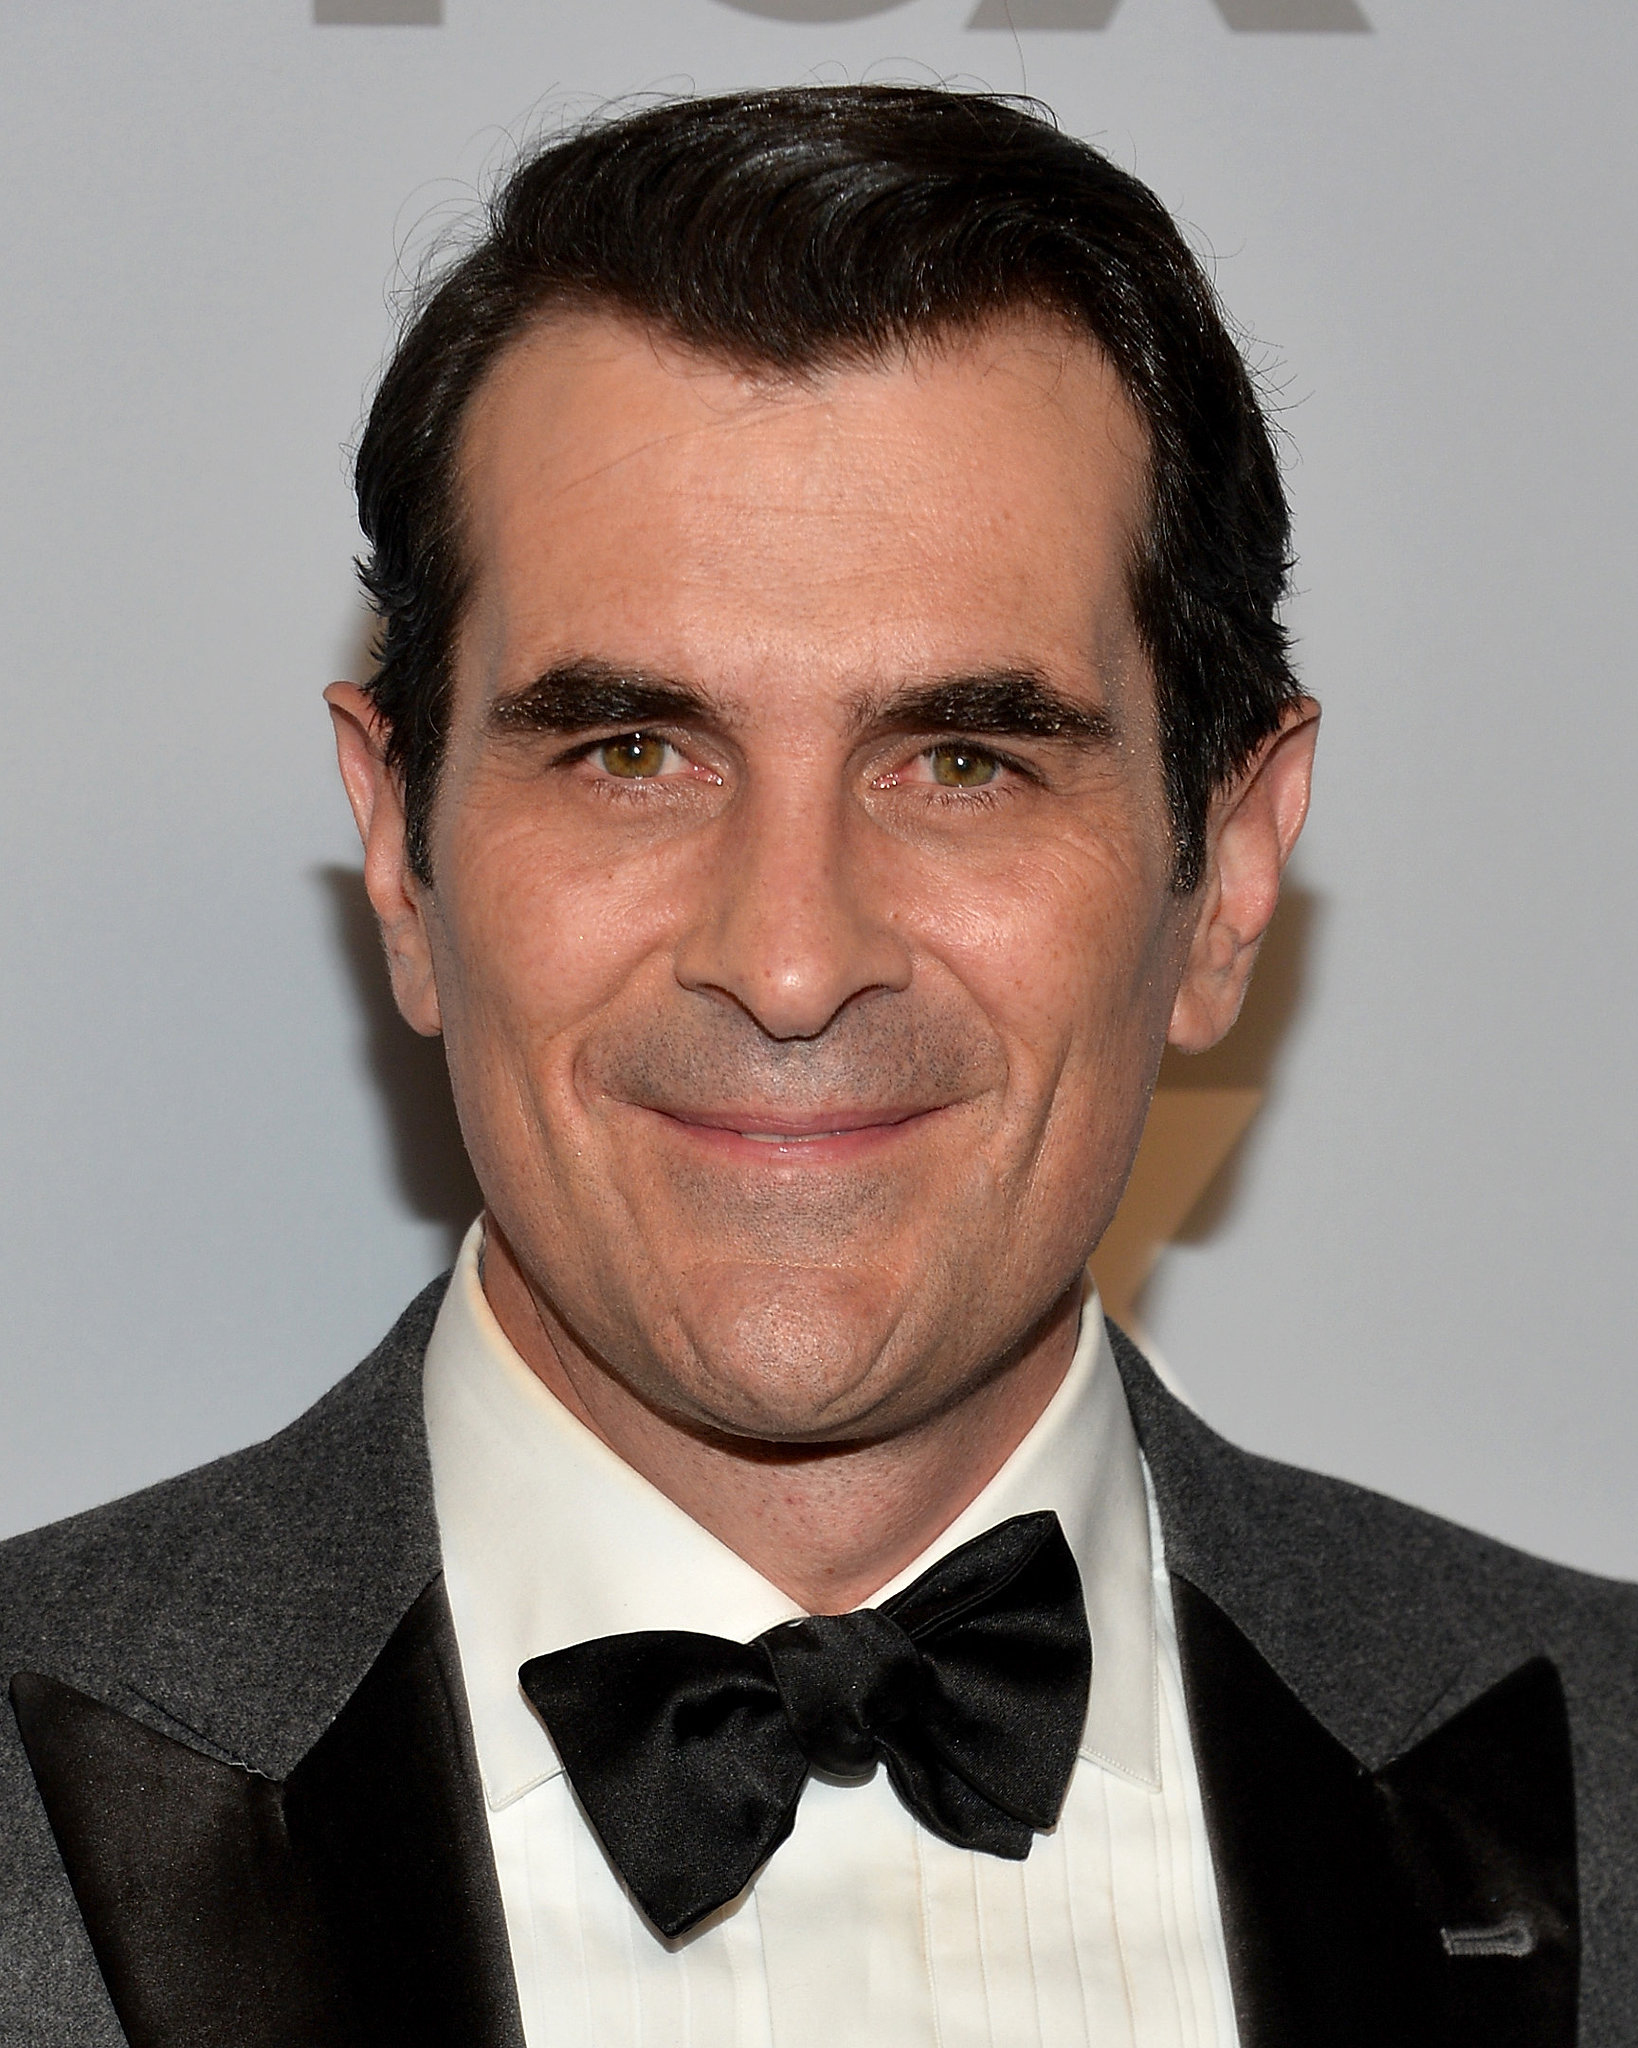 Modern Family star Ty Burrell popped up at the Fox/FX party after the Emmys.